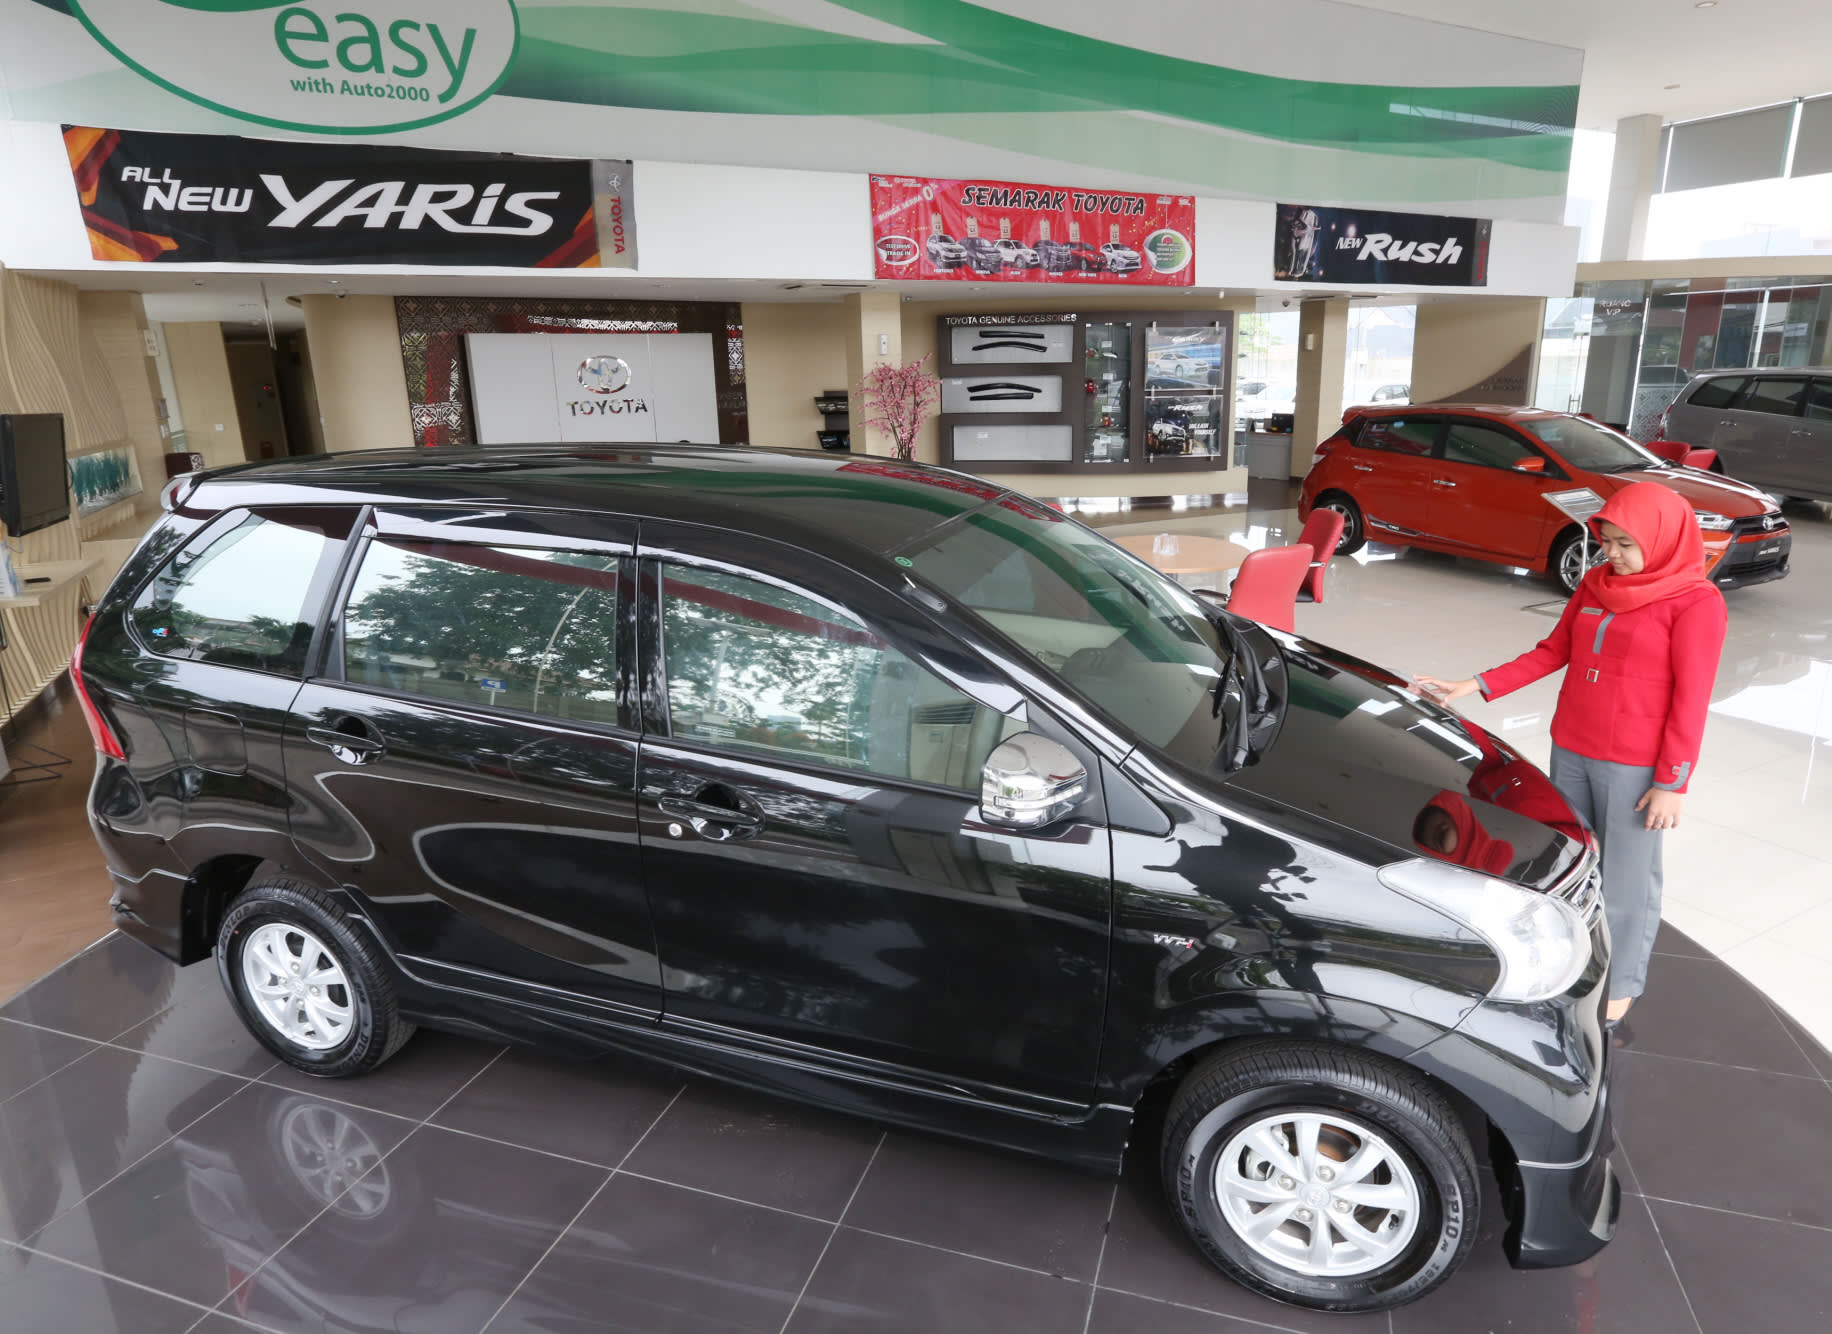 Cars Sales In Indonesia Unique Japanese Carmakers Launch New Models In Indonesia Nikkei asian Review